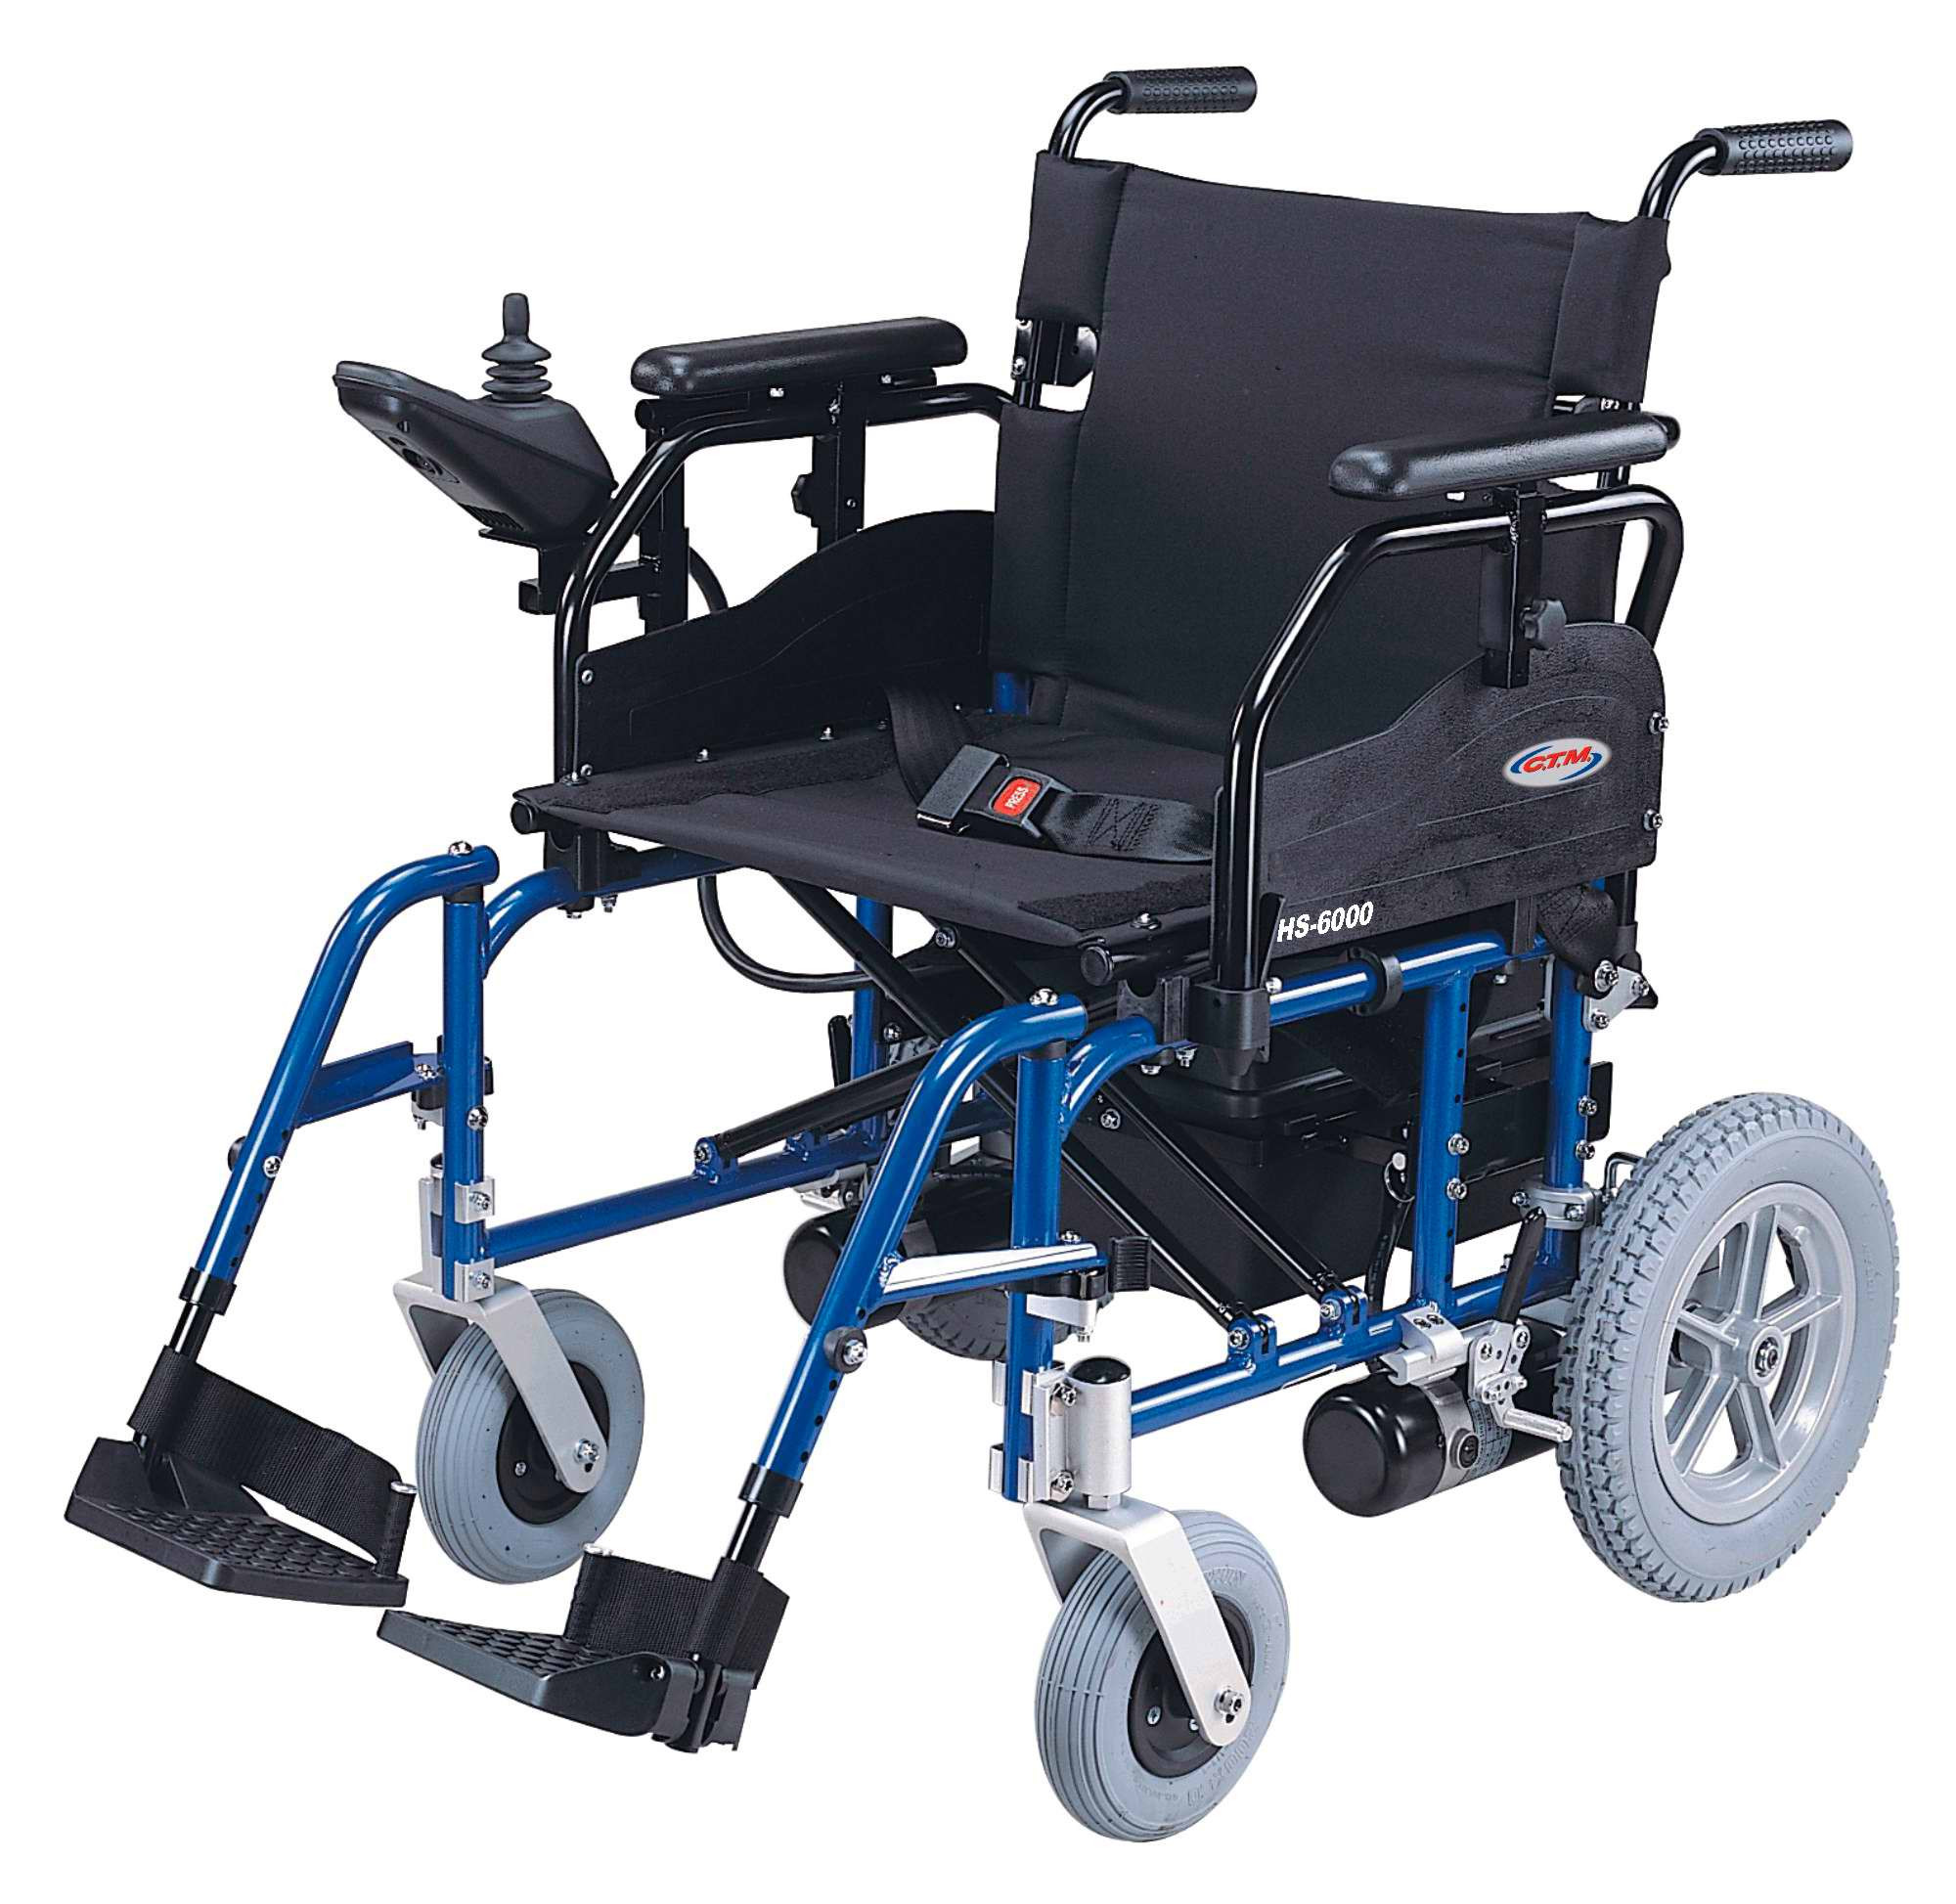 Ctm Hs6200 Power Wheelchair For Sale  Lowest Prices Tax